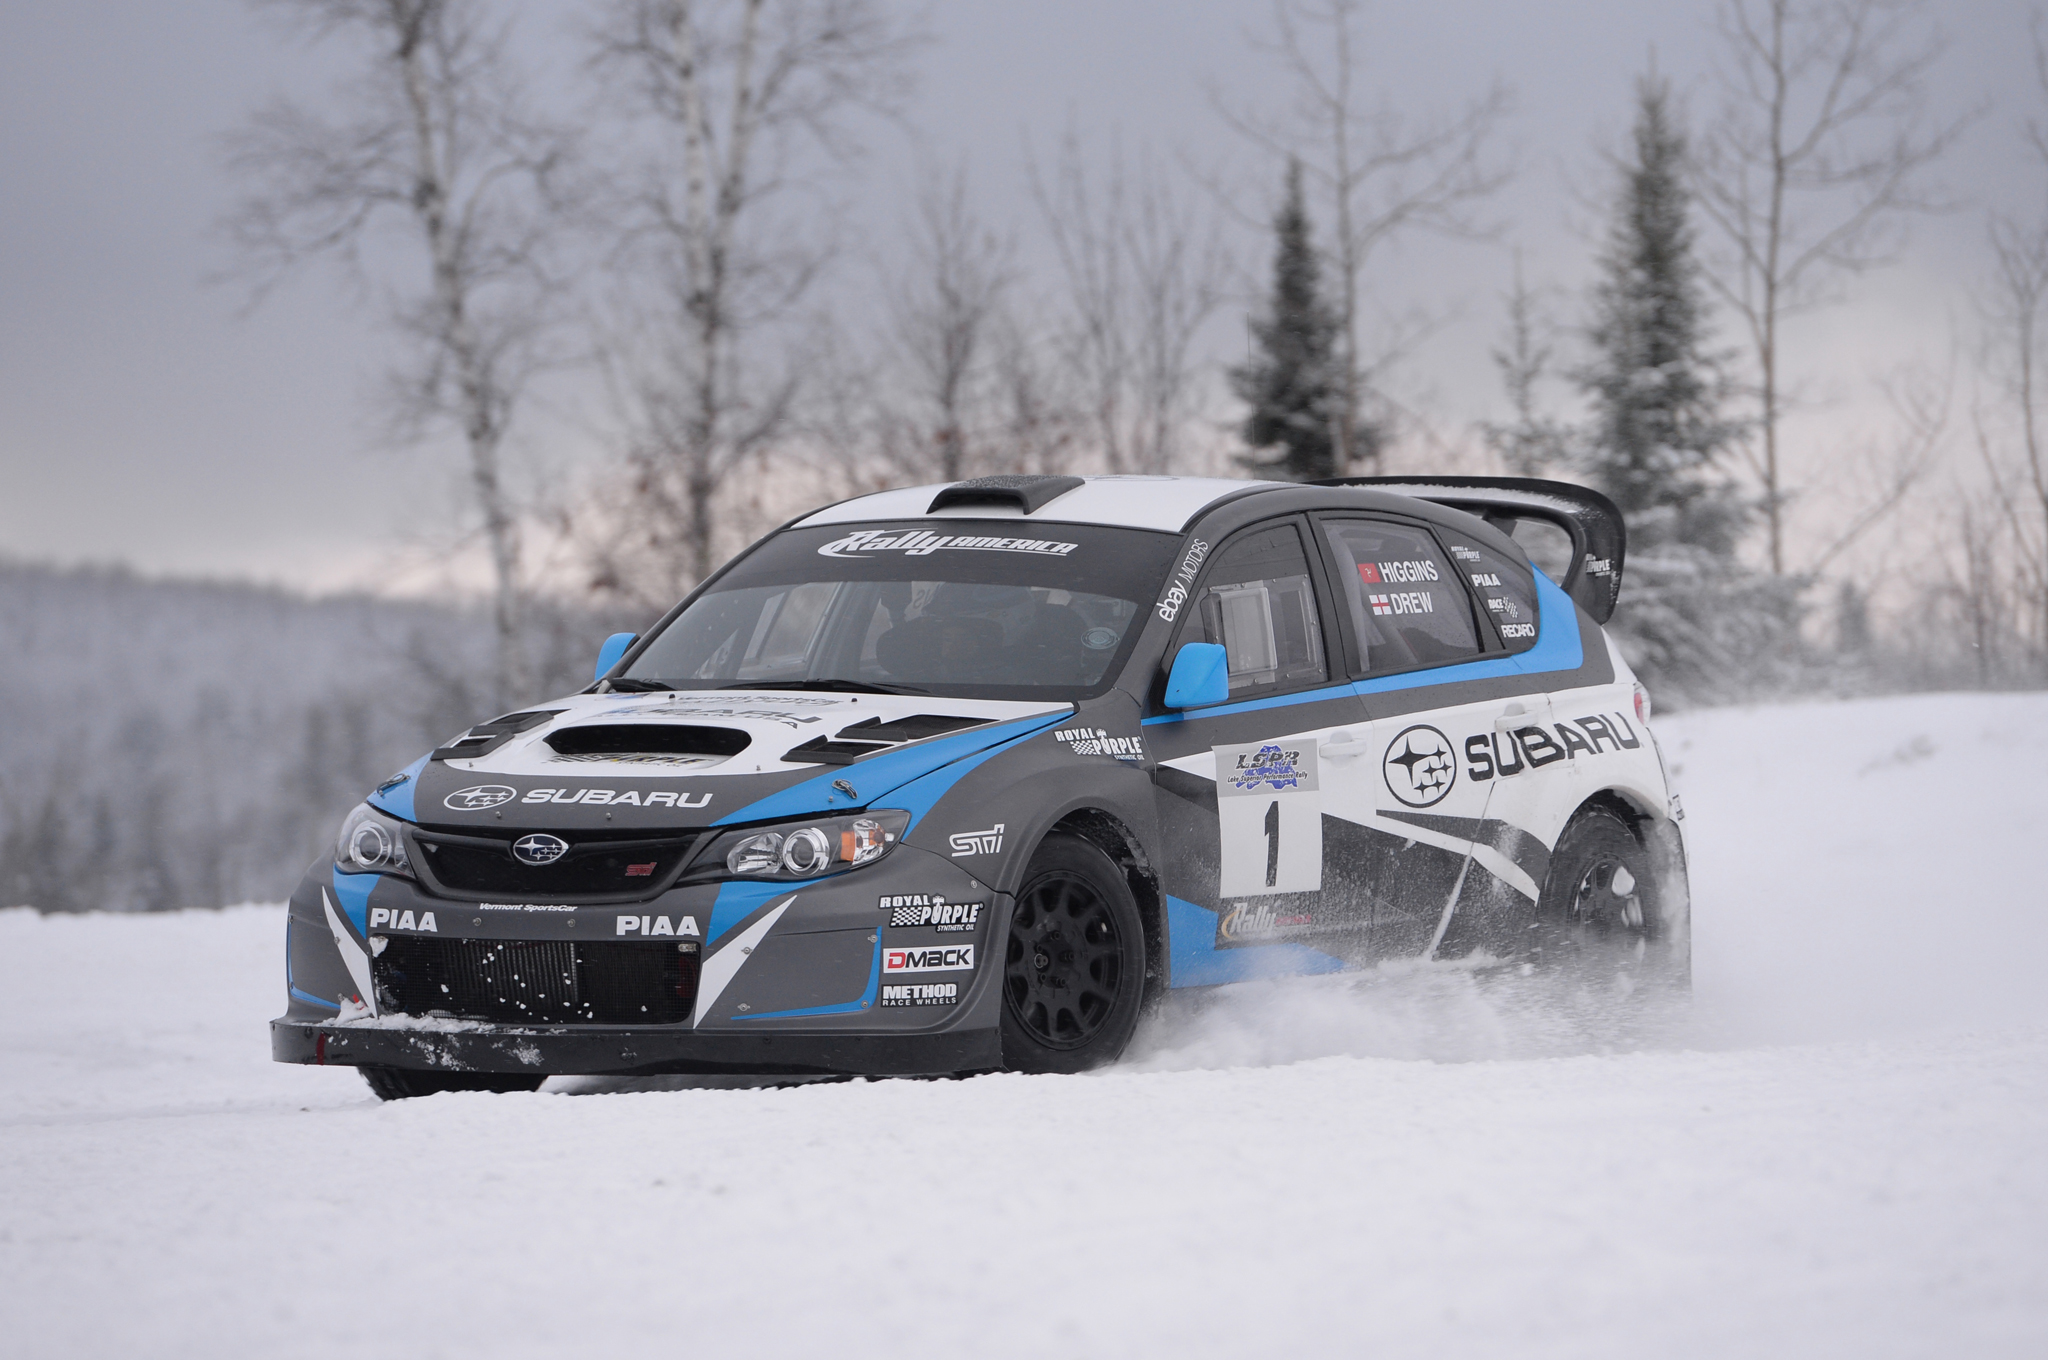 First Slide 2014 Subaru Wrx Sti Rally America Race Car Motor Trend